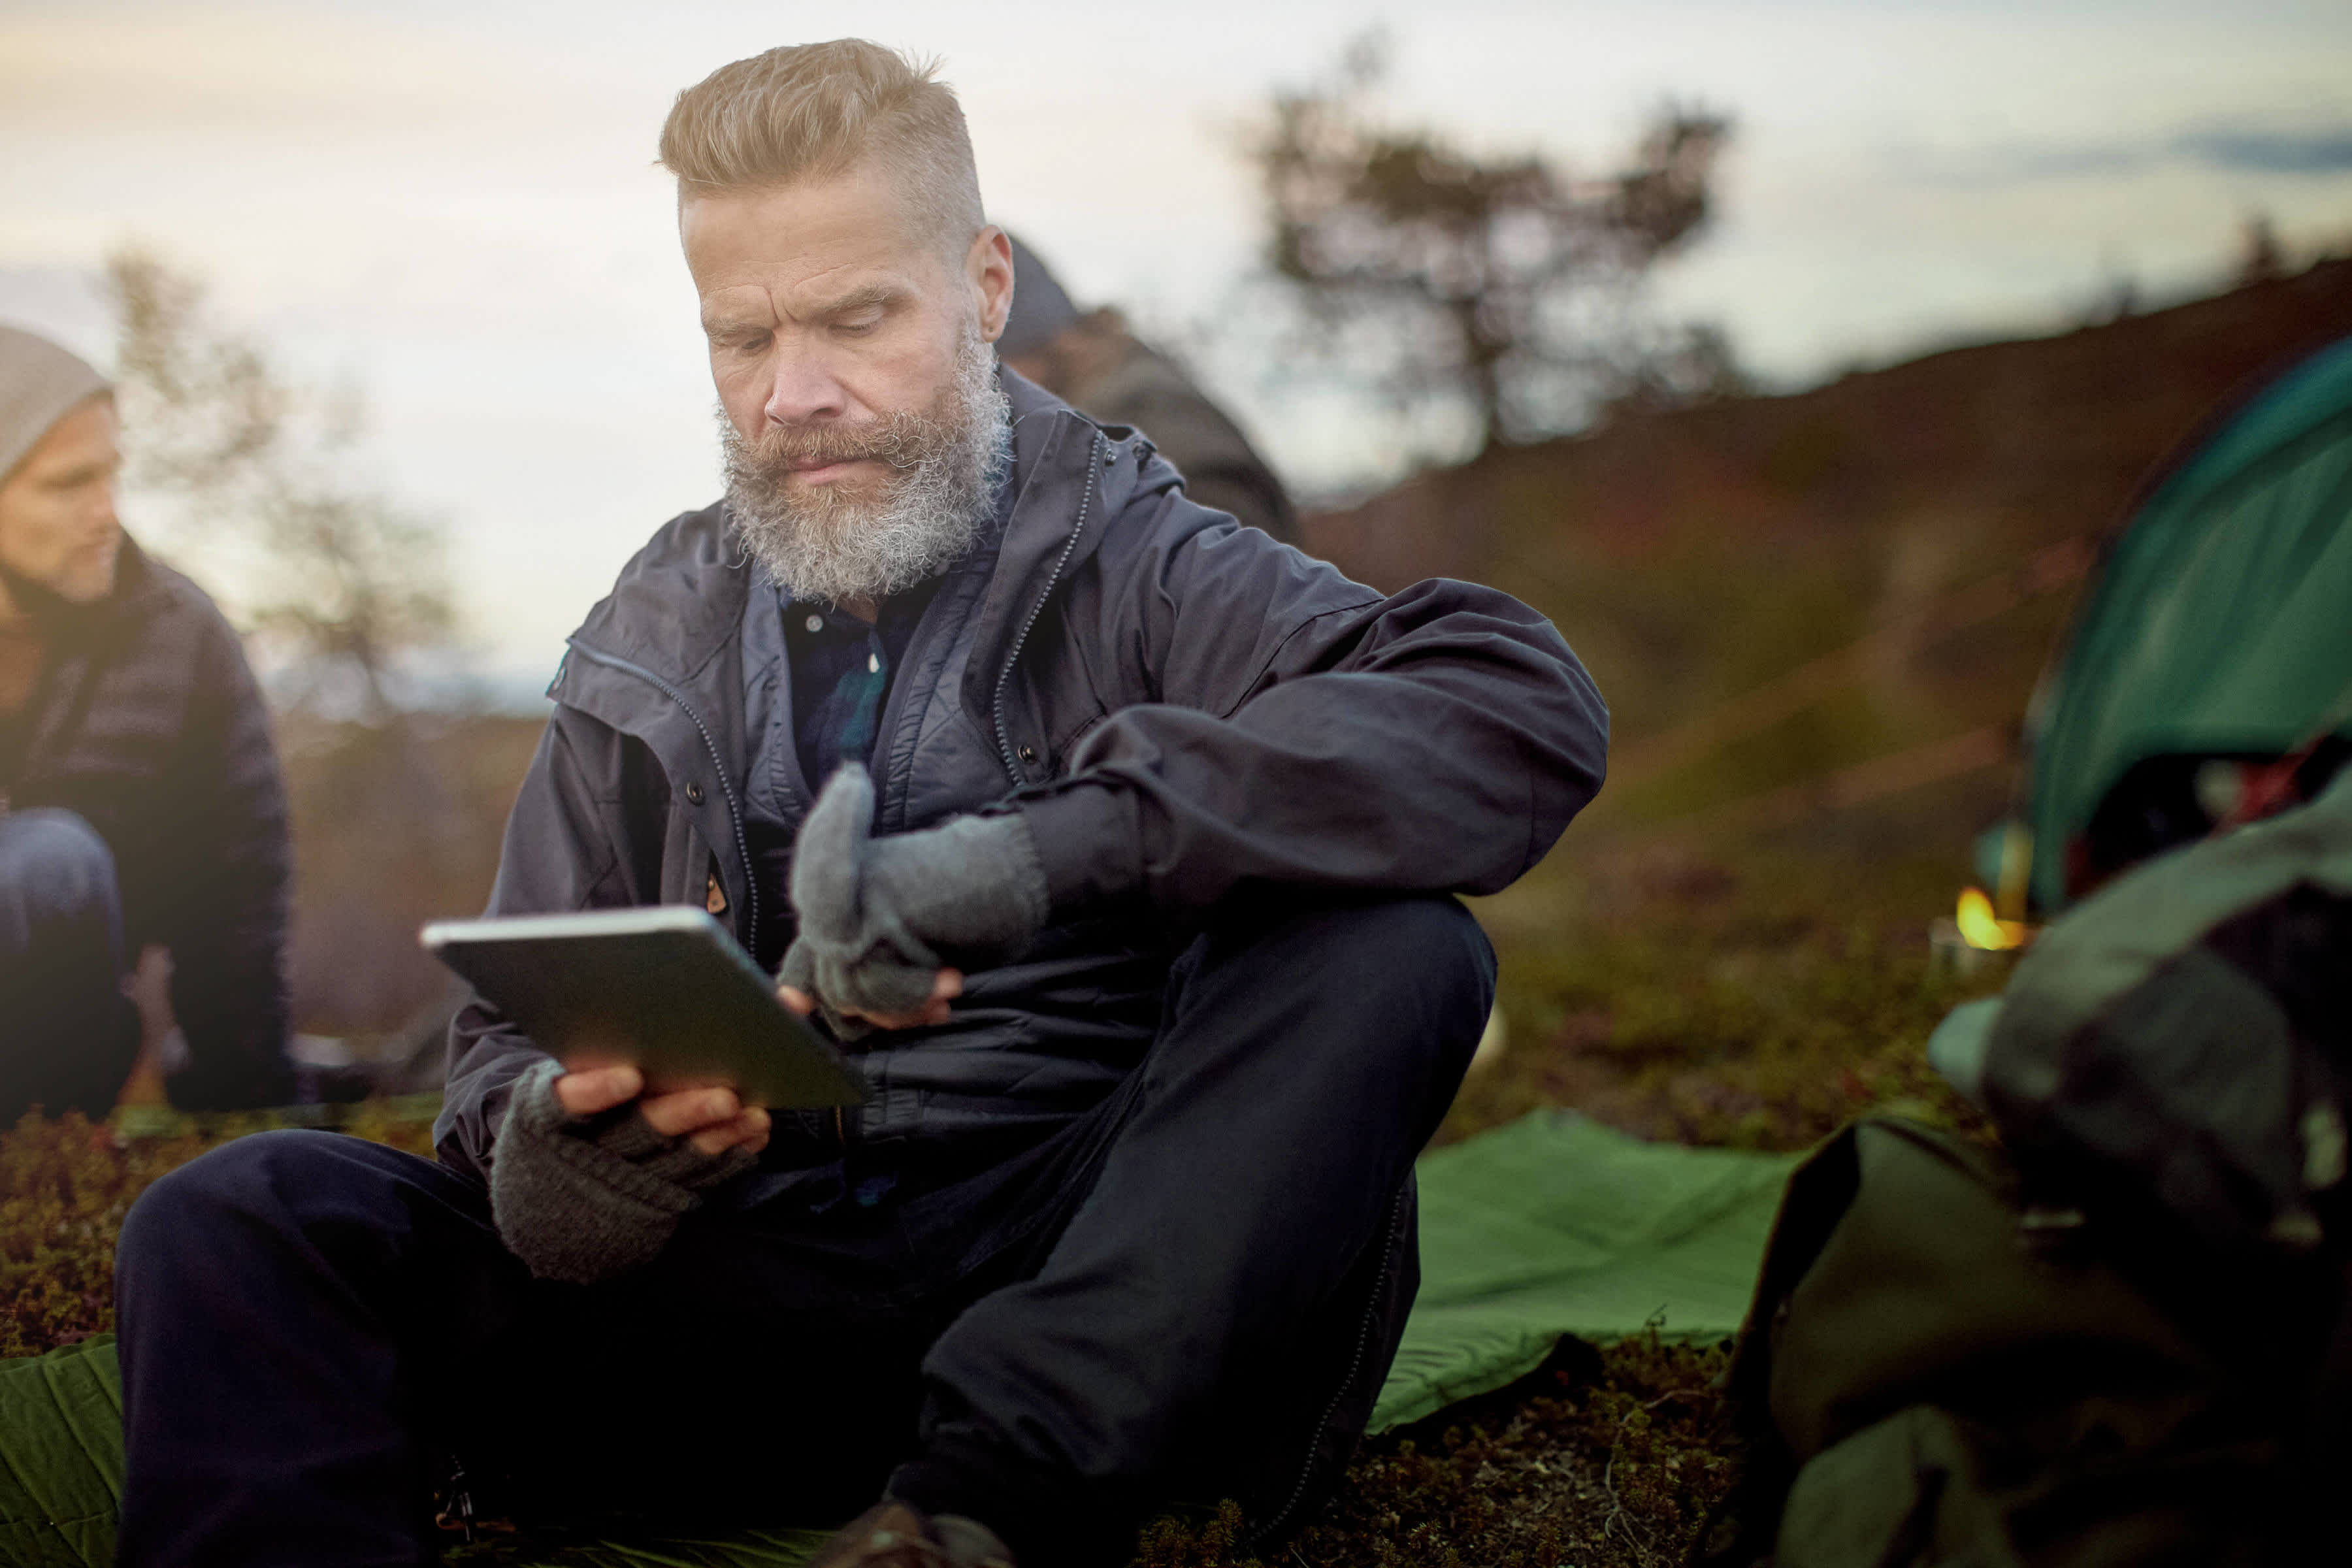 A man is out in the wilderness looking at his tablet.